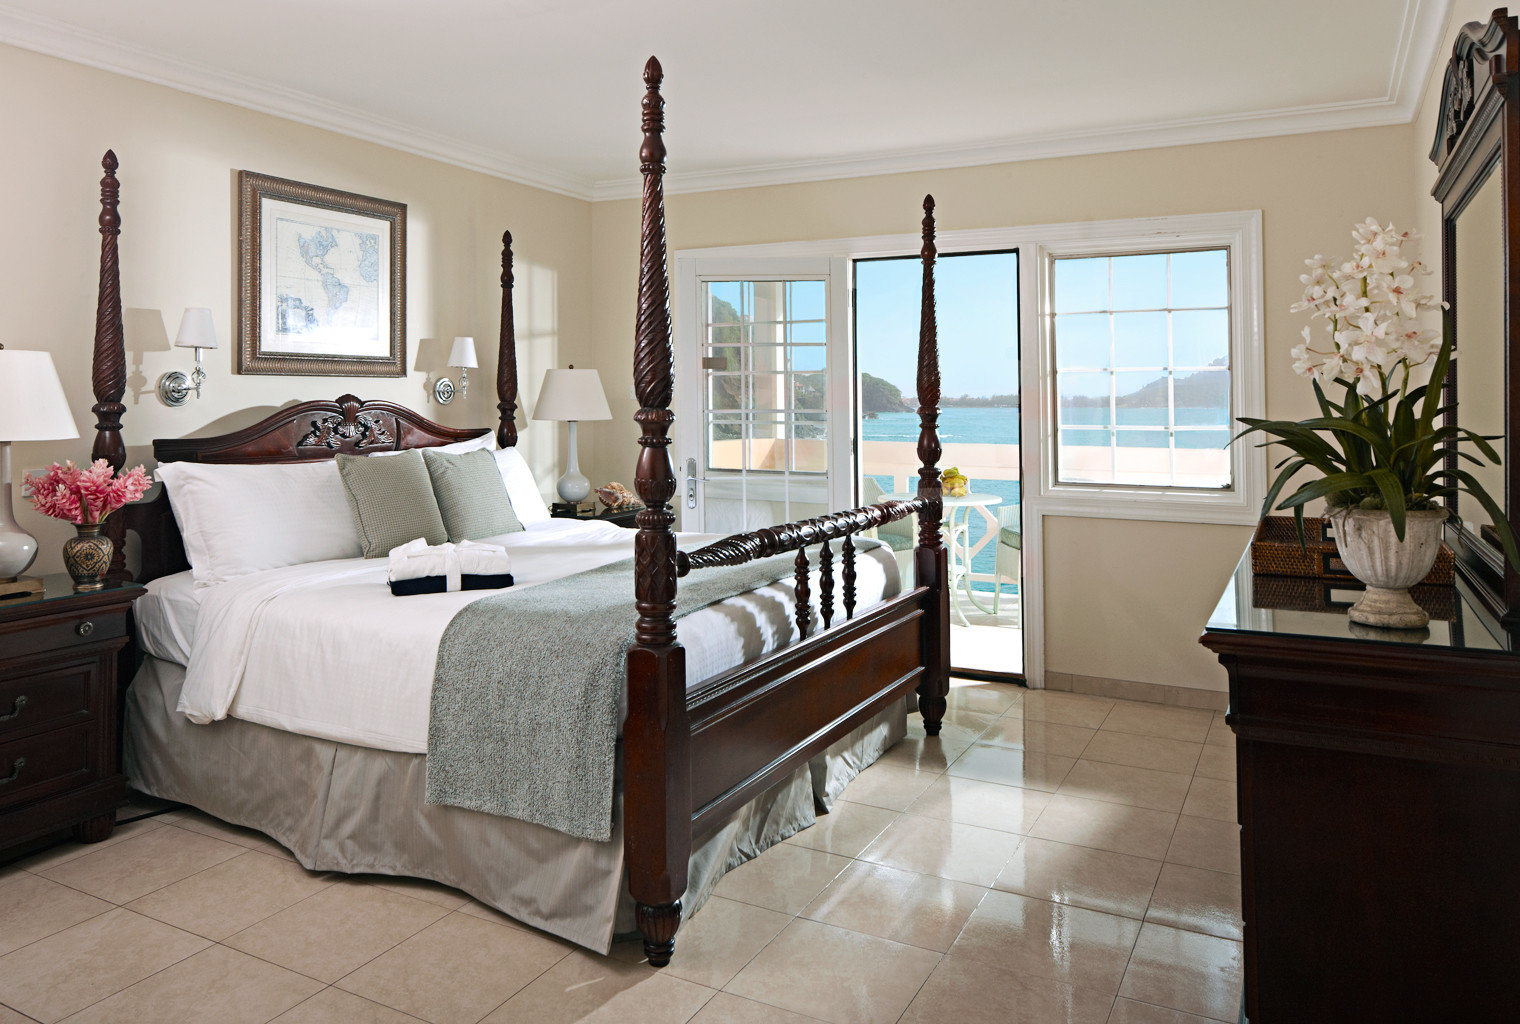 Beach Beachfront Bedroom Classic Hotels Island Scenic views floor indoor wall bed room property window living room home hardwood real estate estate interior design cottage furniture